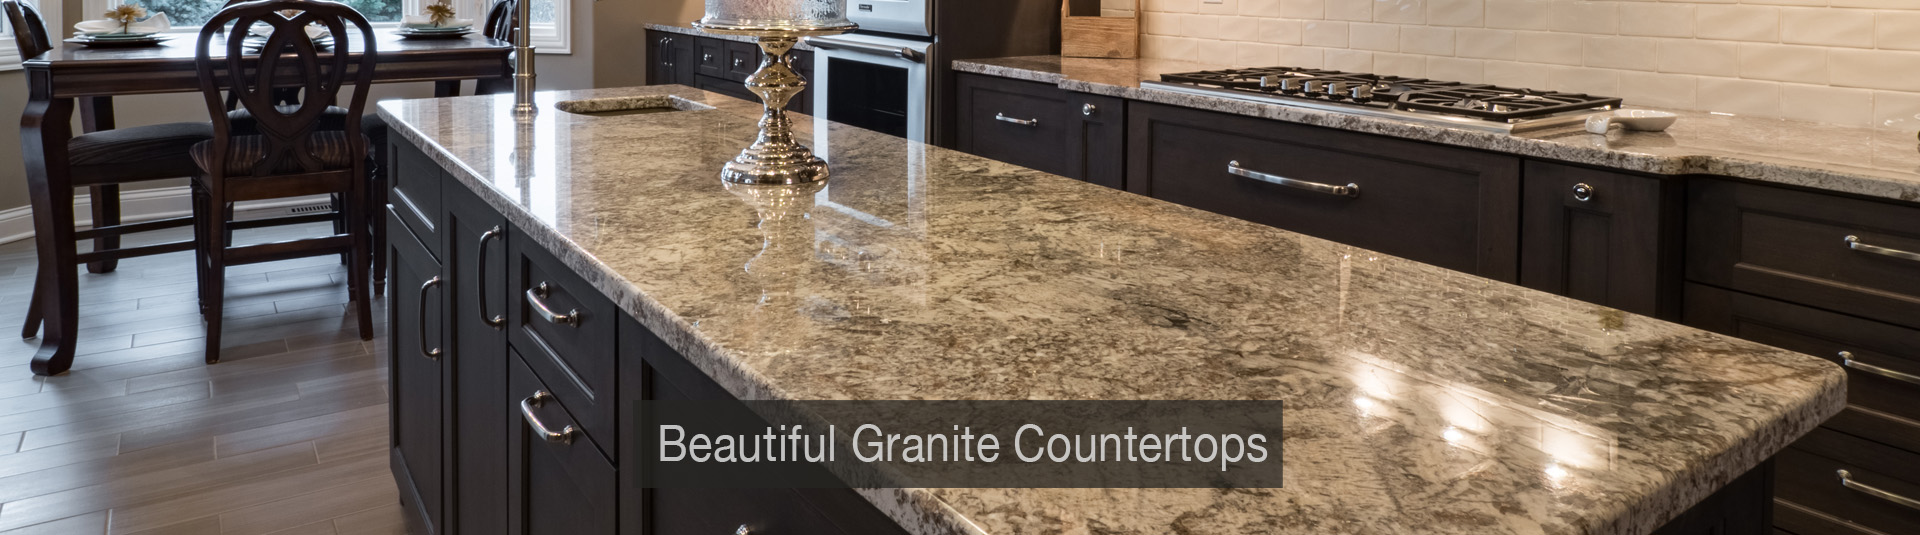 Granite Countertops In Rockford Il Benson Stone Interiors Inside Ideas Interiors design about Everything [magnanprojects.com]